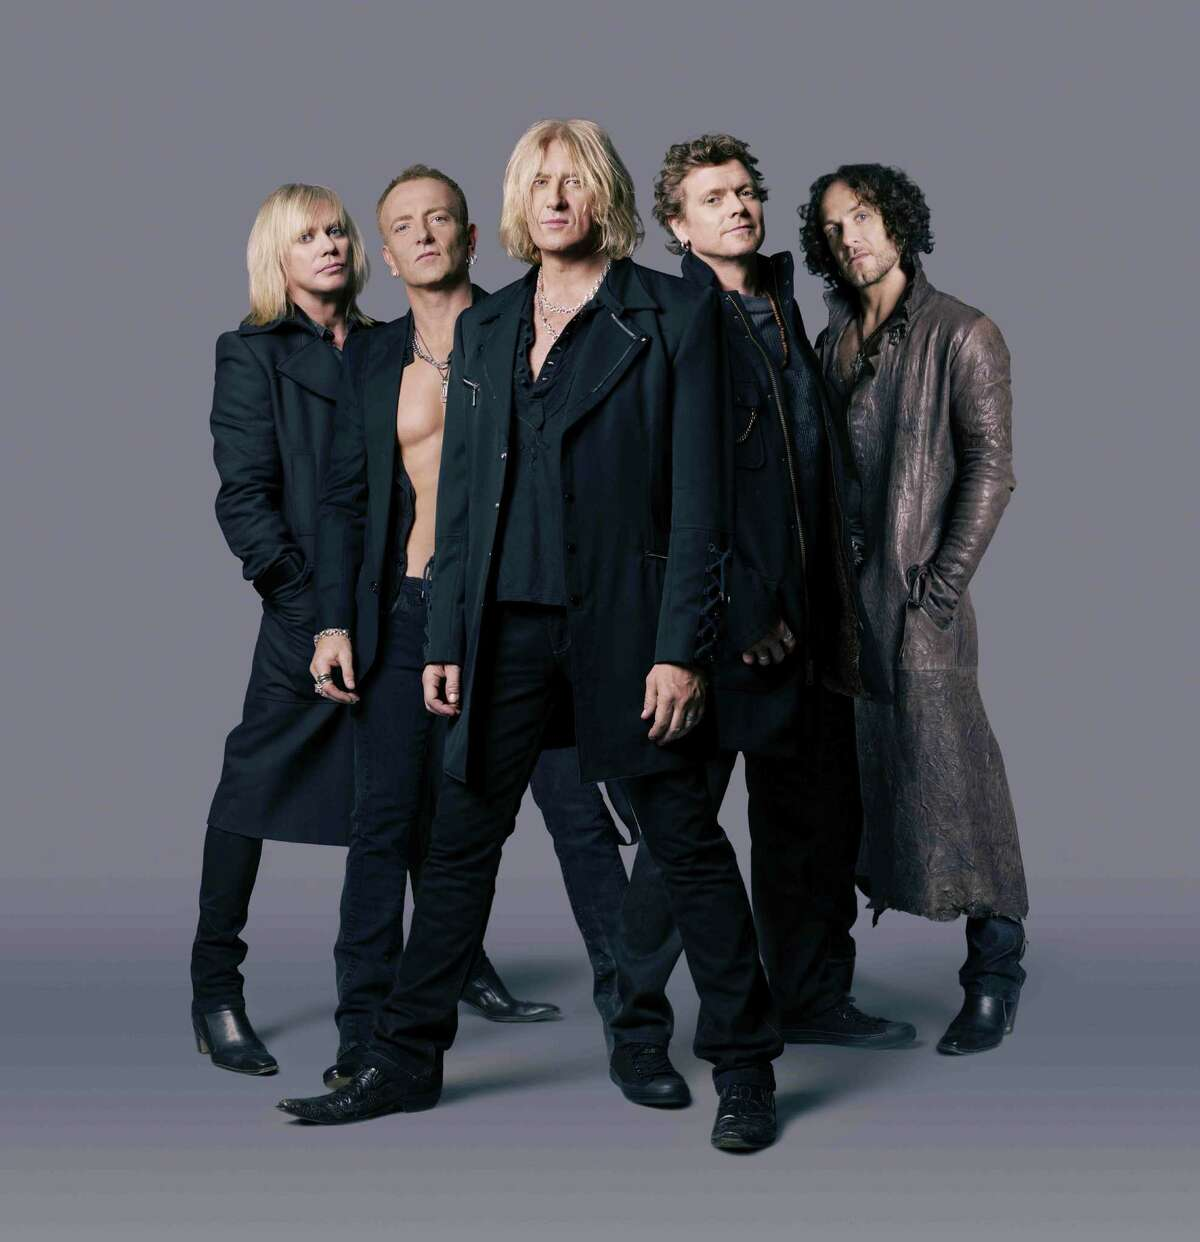 Def Leppard (shown), Styx and Tesla will play the Cynthia Woods Mitchell Pavilion on Aug. 22.PHOTOS: Concerts coming soon to Houston ...